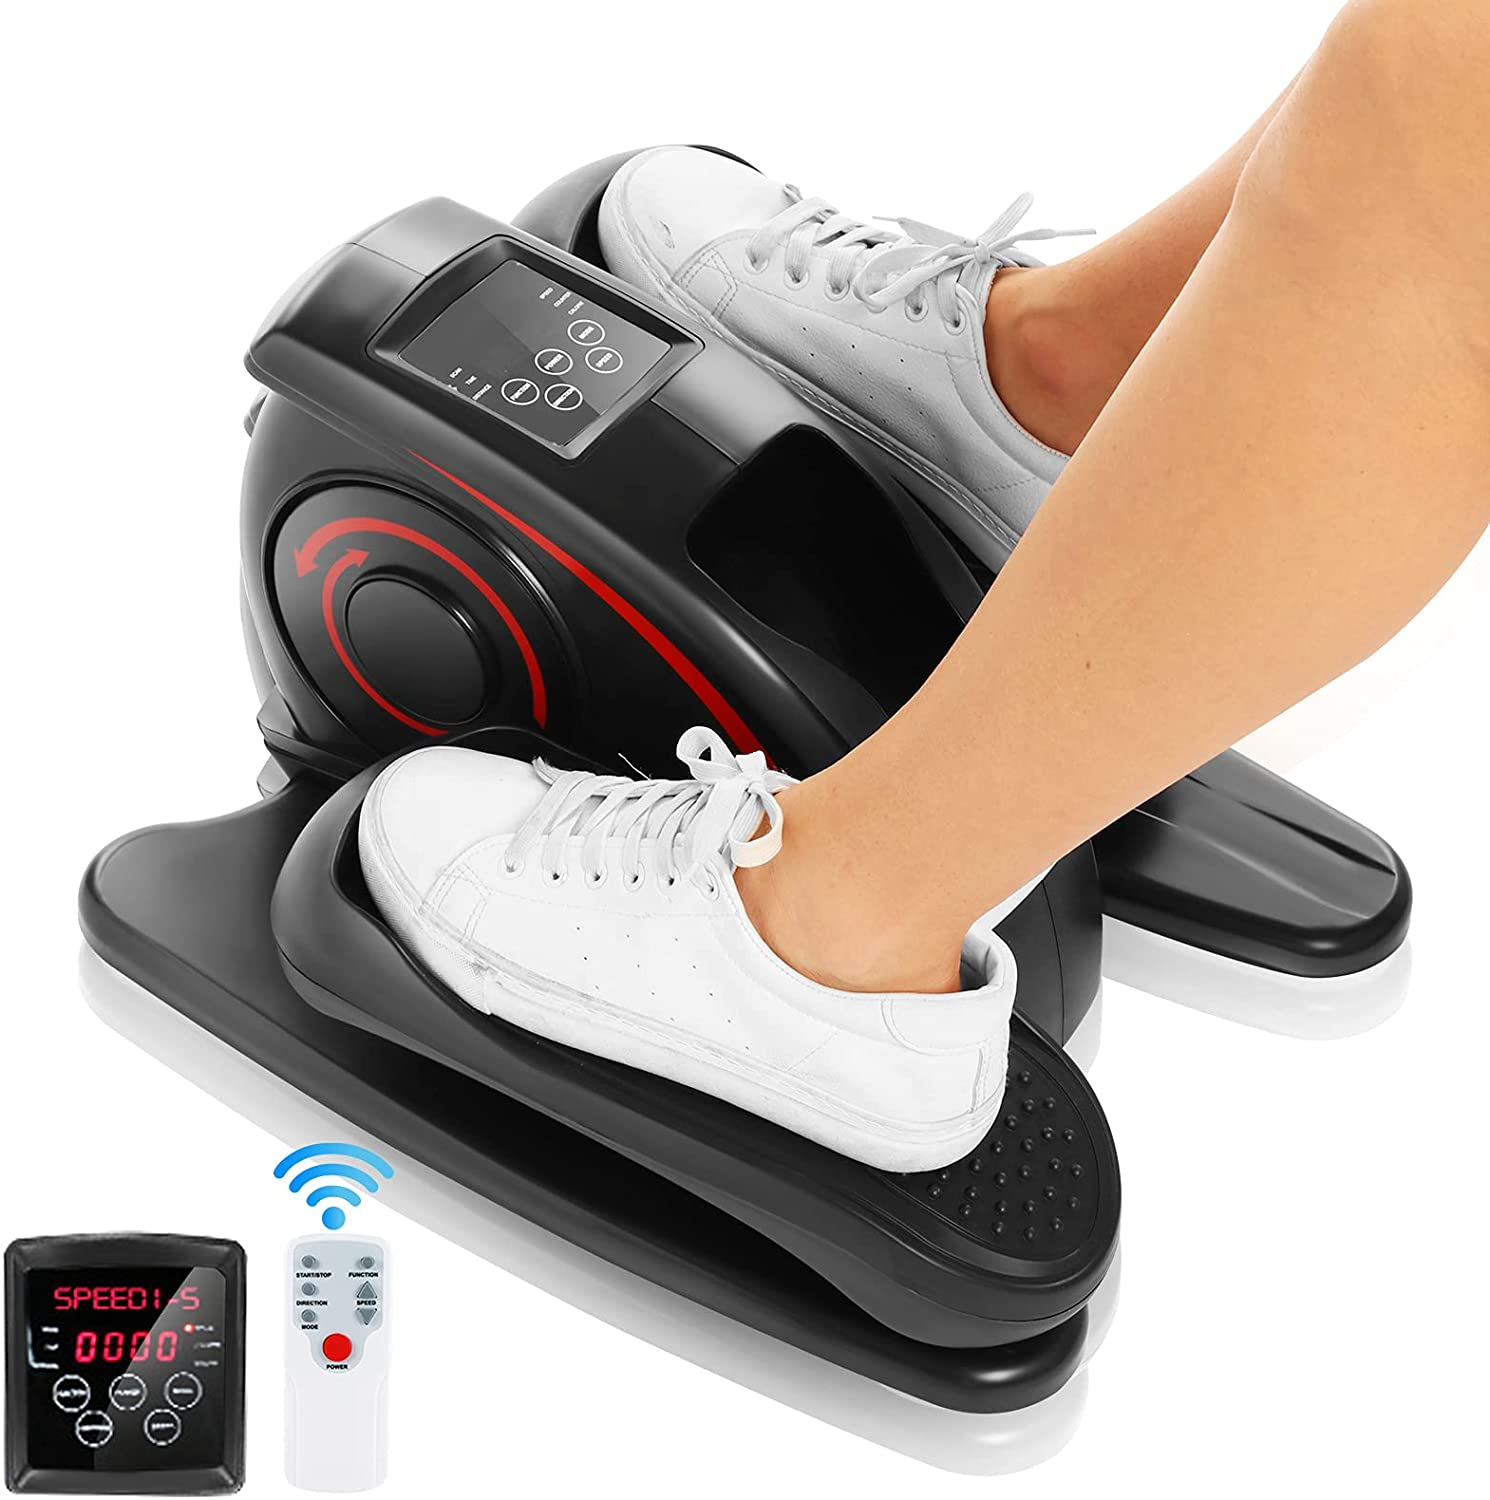 ANCHEER Under Desk Cycle, Indoor Pedal Exerciser, Electric Under Desk Elliptical Machine Trainer with Built in Display Monitor Quiet & Compact